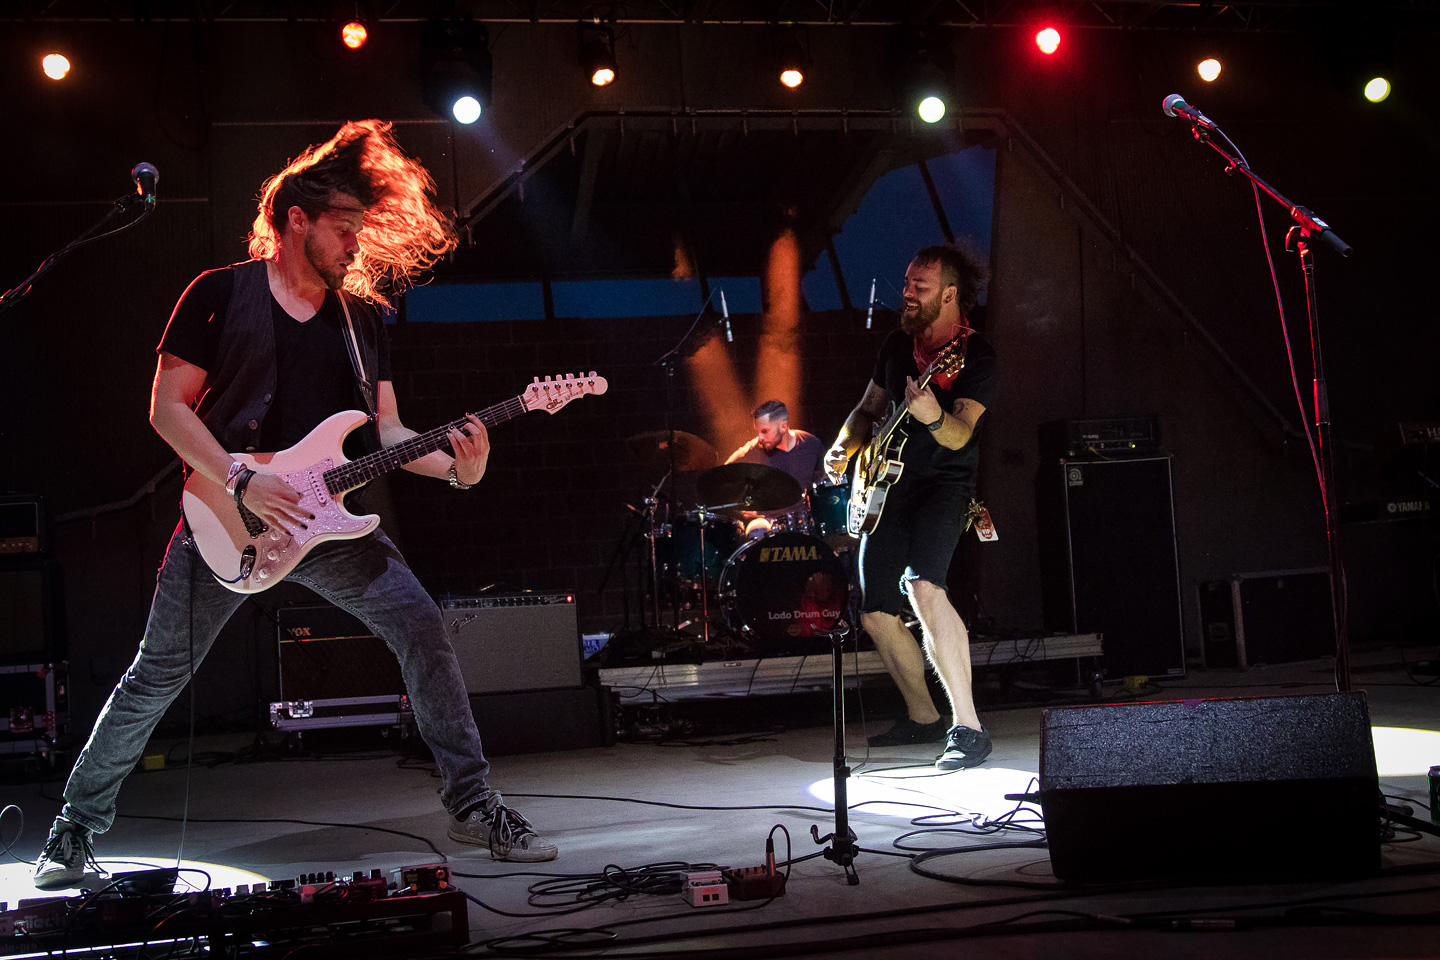 The Hollow - Denver Music Scene - Levitt Pavilion Denver